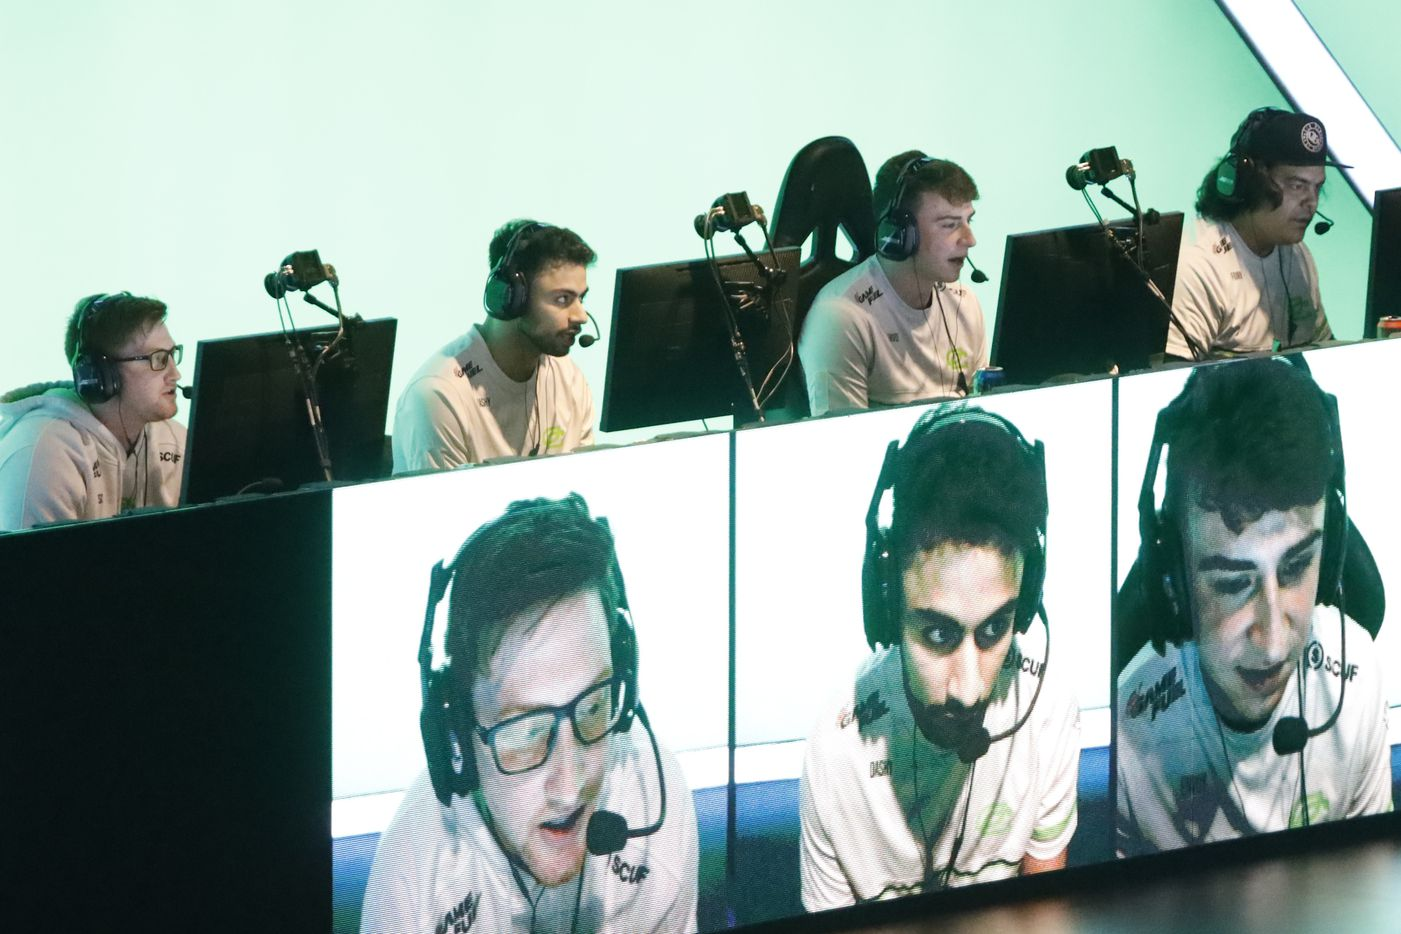 Chicago OpTic compete in a match against Dallas Empire during the Call of Duty League Major V tournament at Esports Stadium Arlington on Sunday, Aug. 1, 2021, in Arlington. Empire finished 4th in the tournament after a 3-1 loss to OpTic. (Elias Valverde II/The Dallas Morning News)